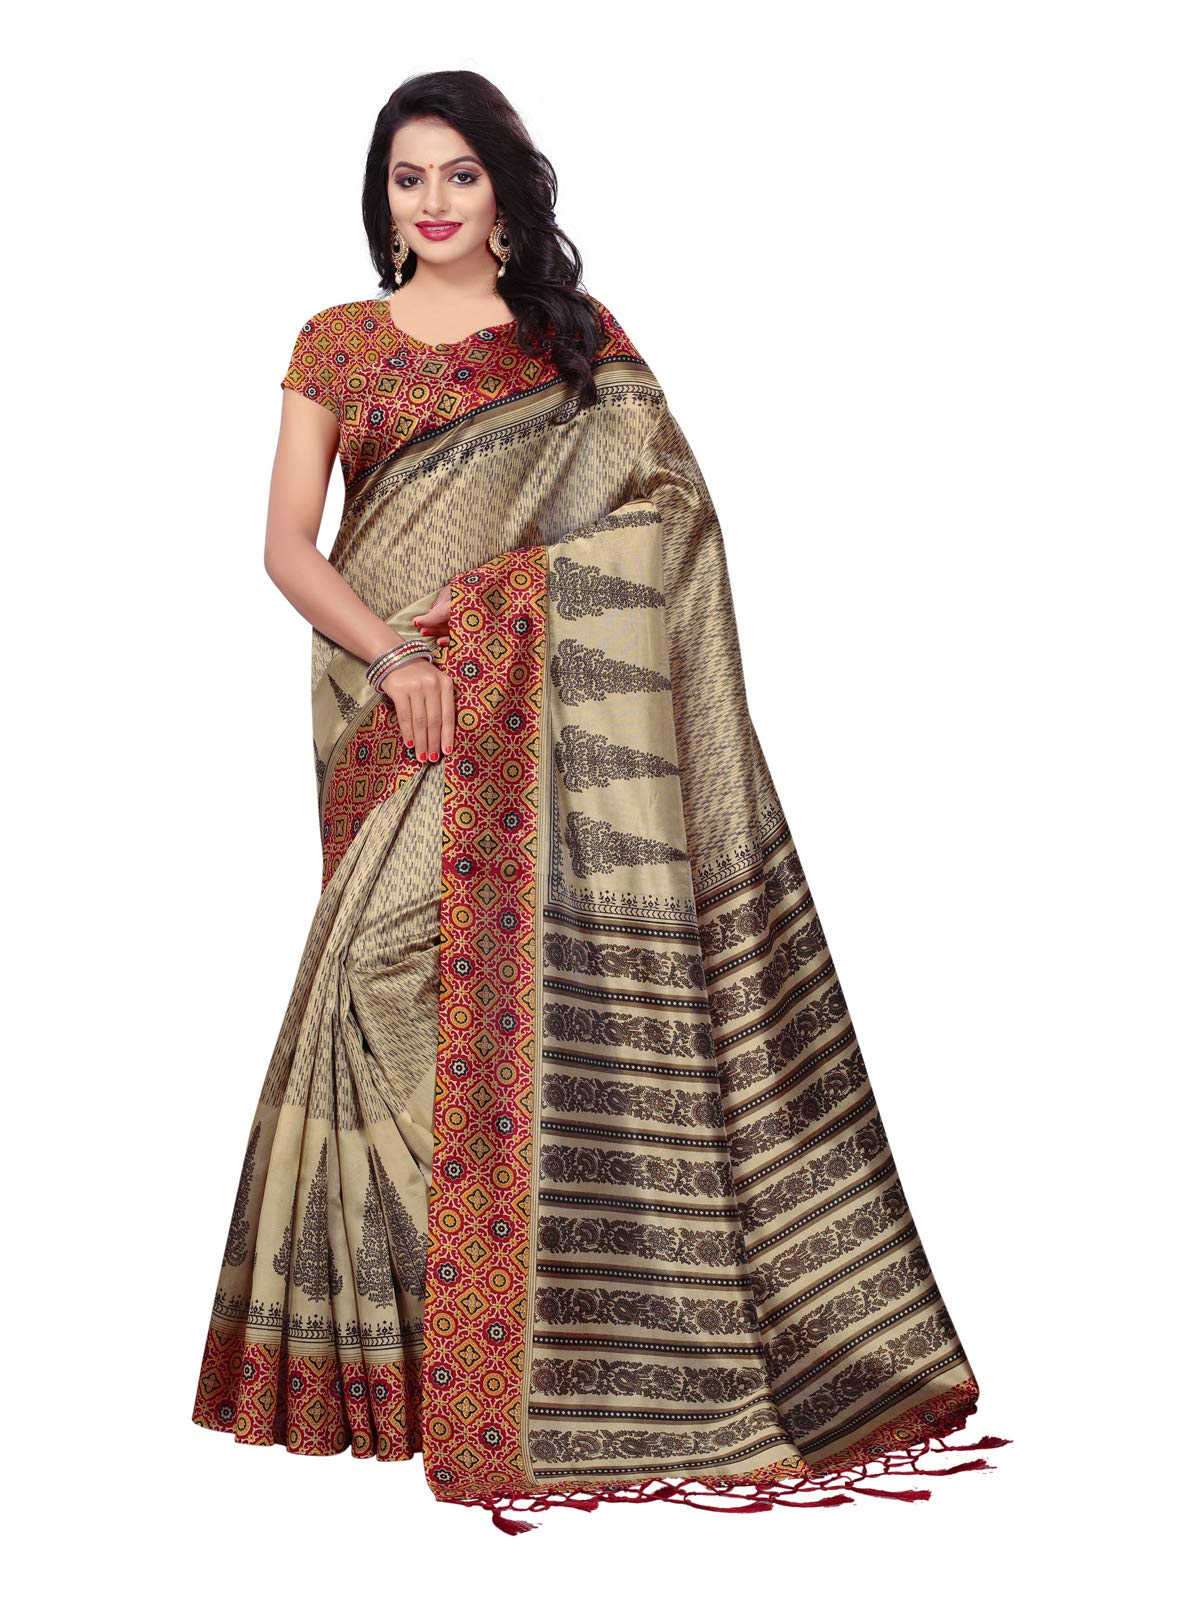 Kanchnar Women's Beige and Maroon Poly Silk Printed Saree